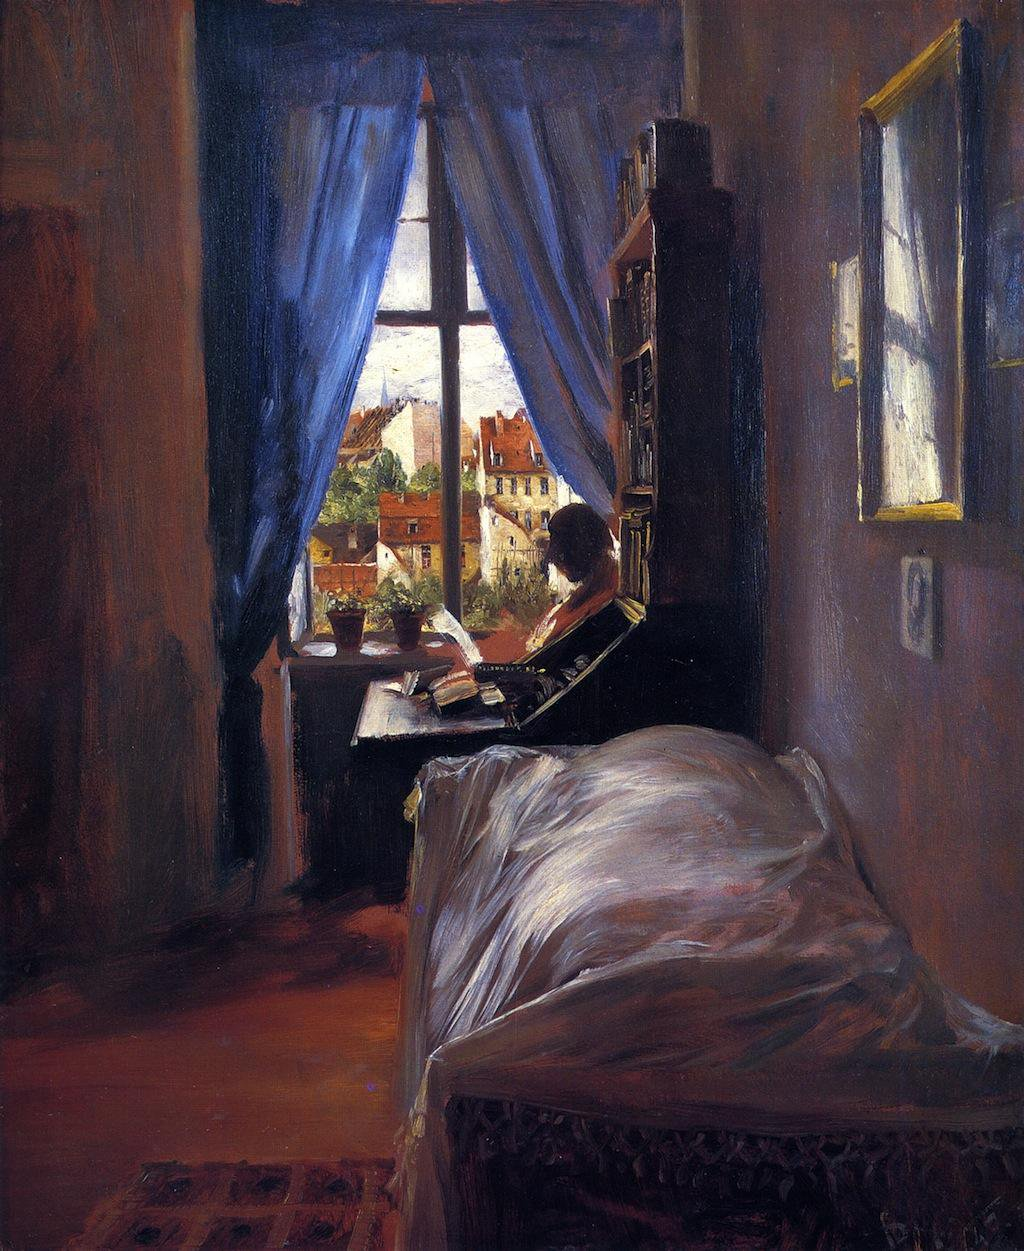 The Artist's Bedroom in Ritterstrasse - Adolph Menzel